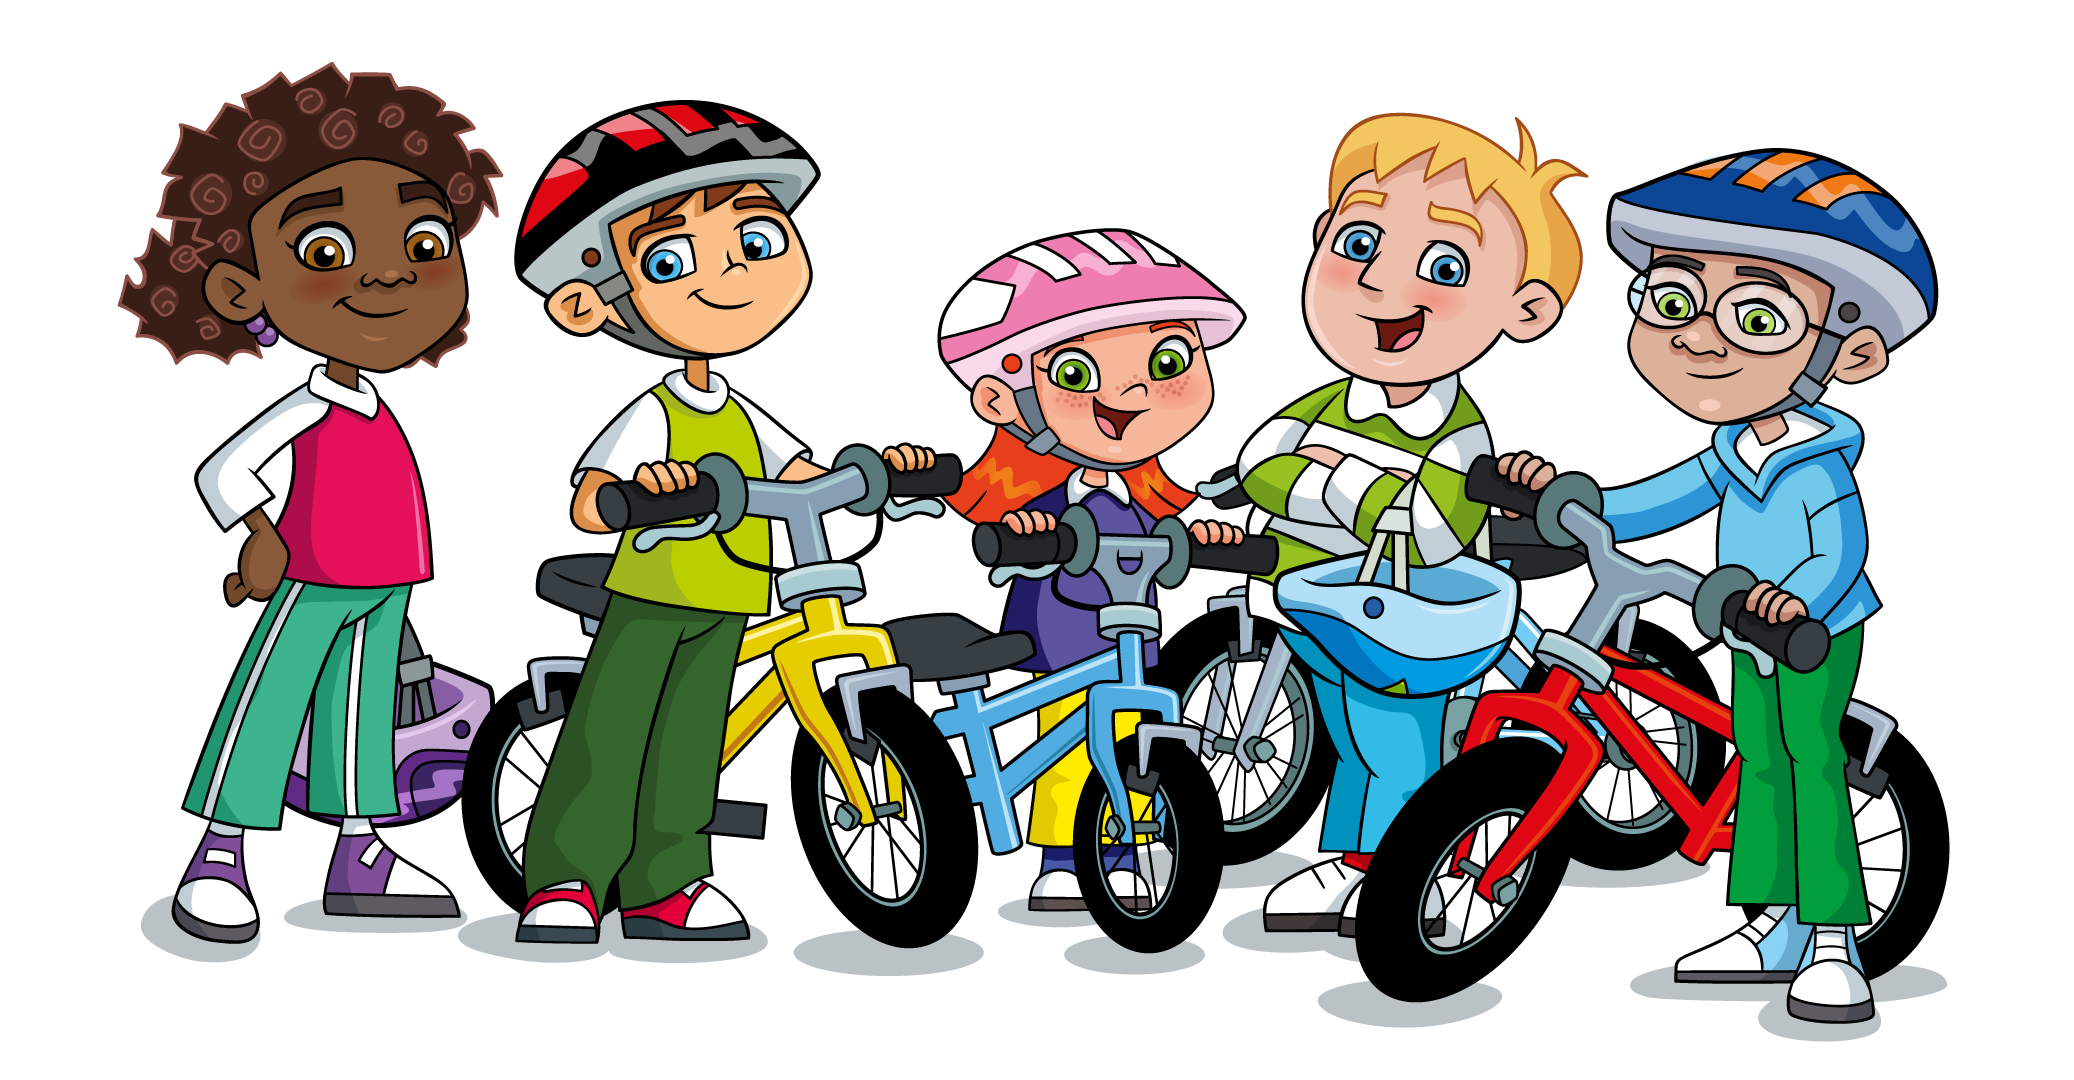 Free clipart boy riding bike with mom. Let s ride homepage